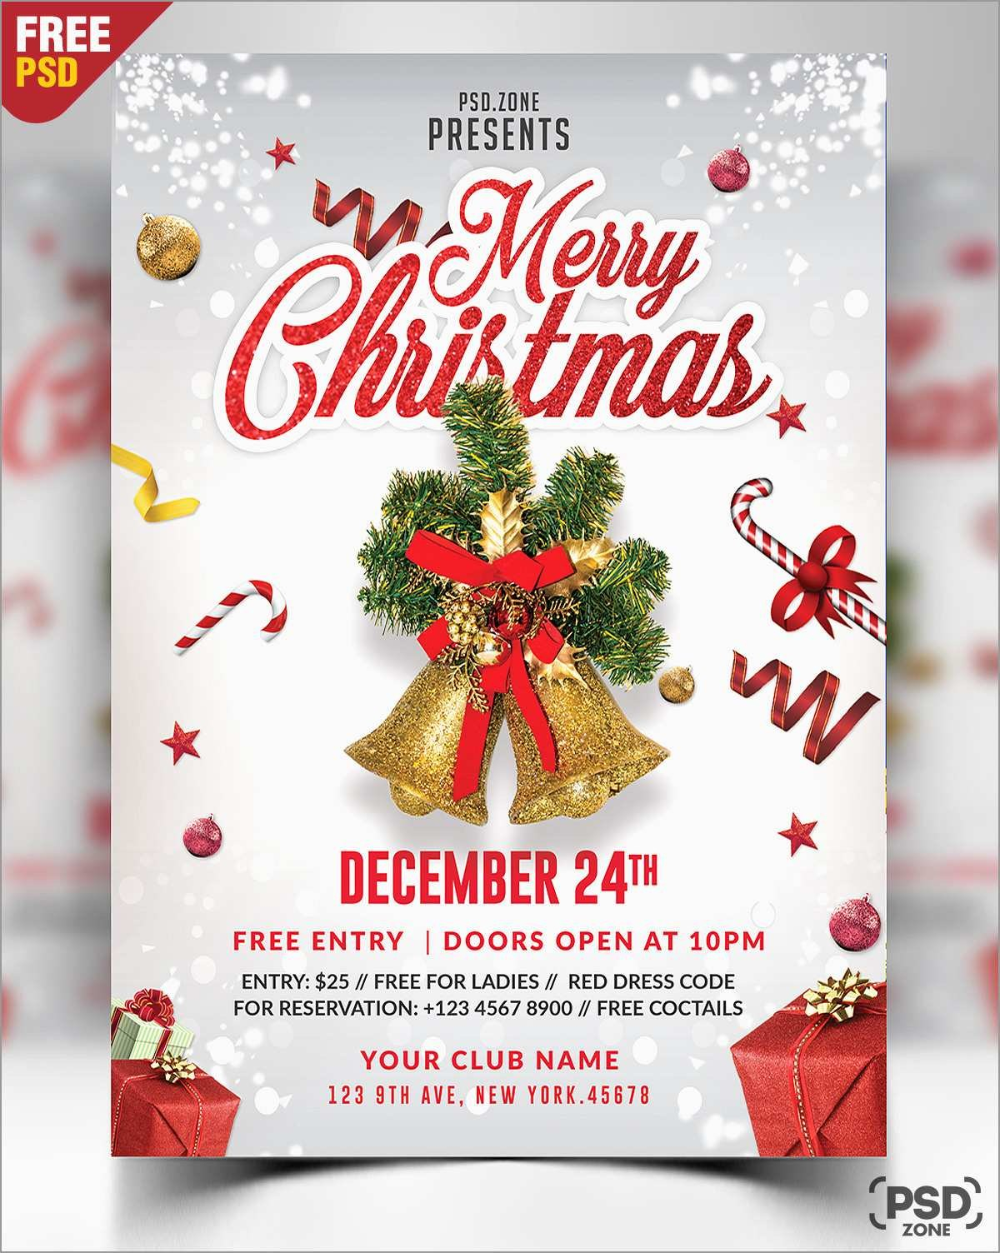 Elegant Free Christmas Flyer Templates Psd Best Of Template Throughout Ch Photoshop Christmas Card Template Free Christmas Flyer Templates Christmas Cards Free